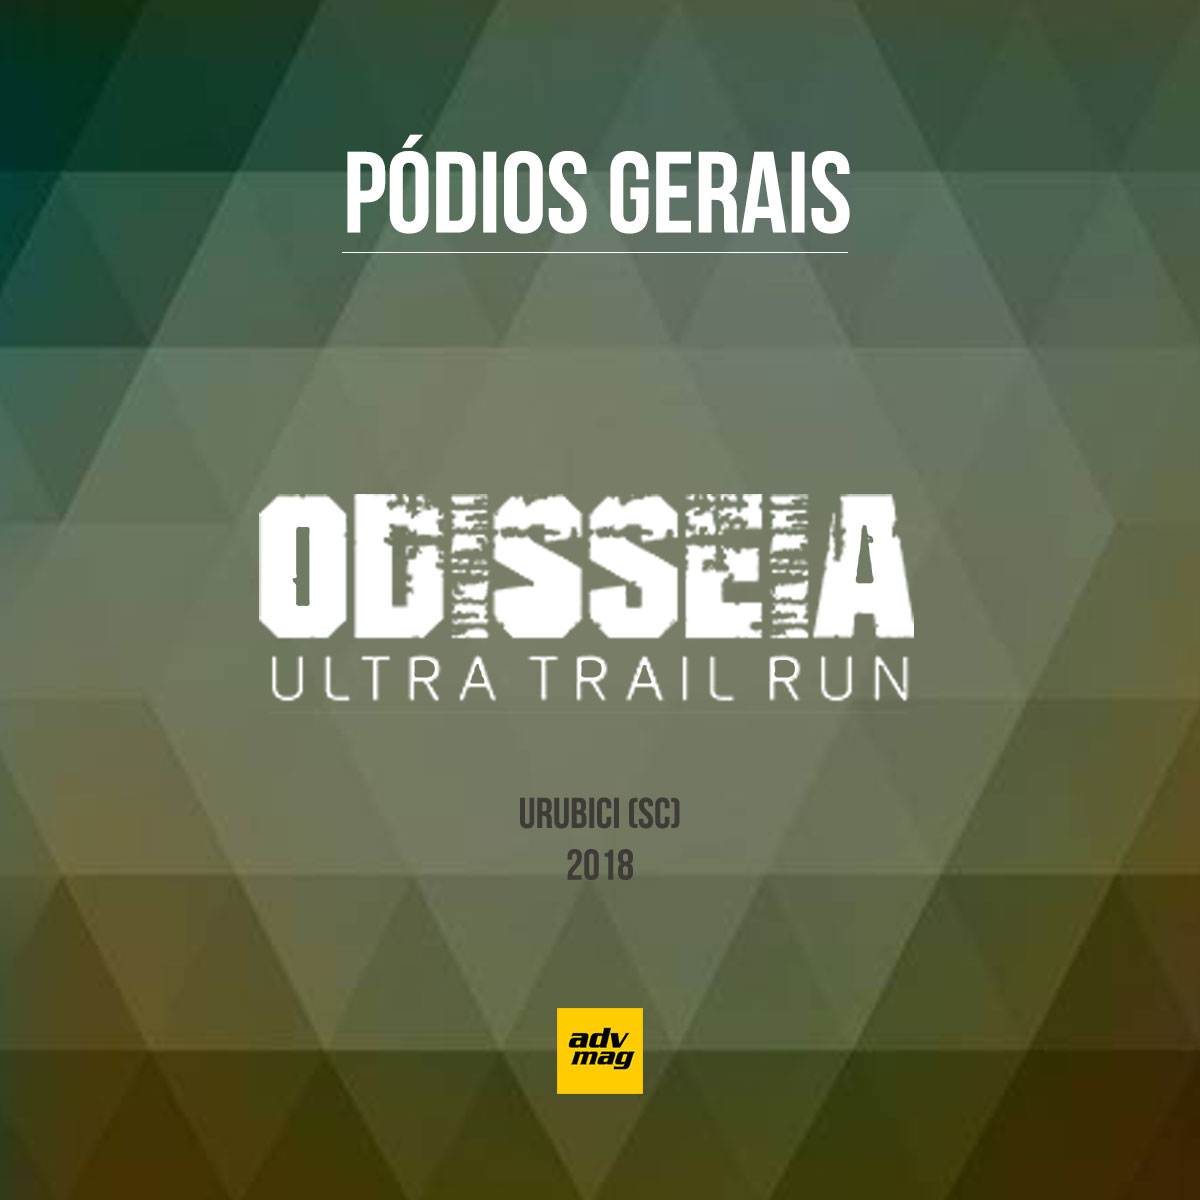 Pódios Odisséia Ultra Trail Run